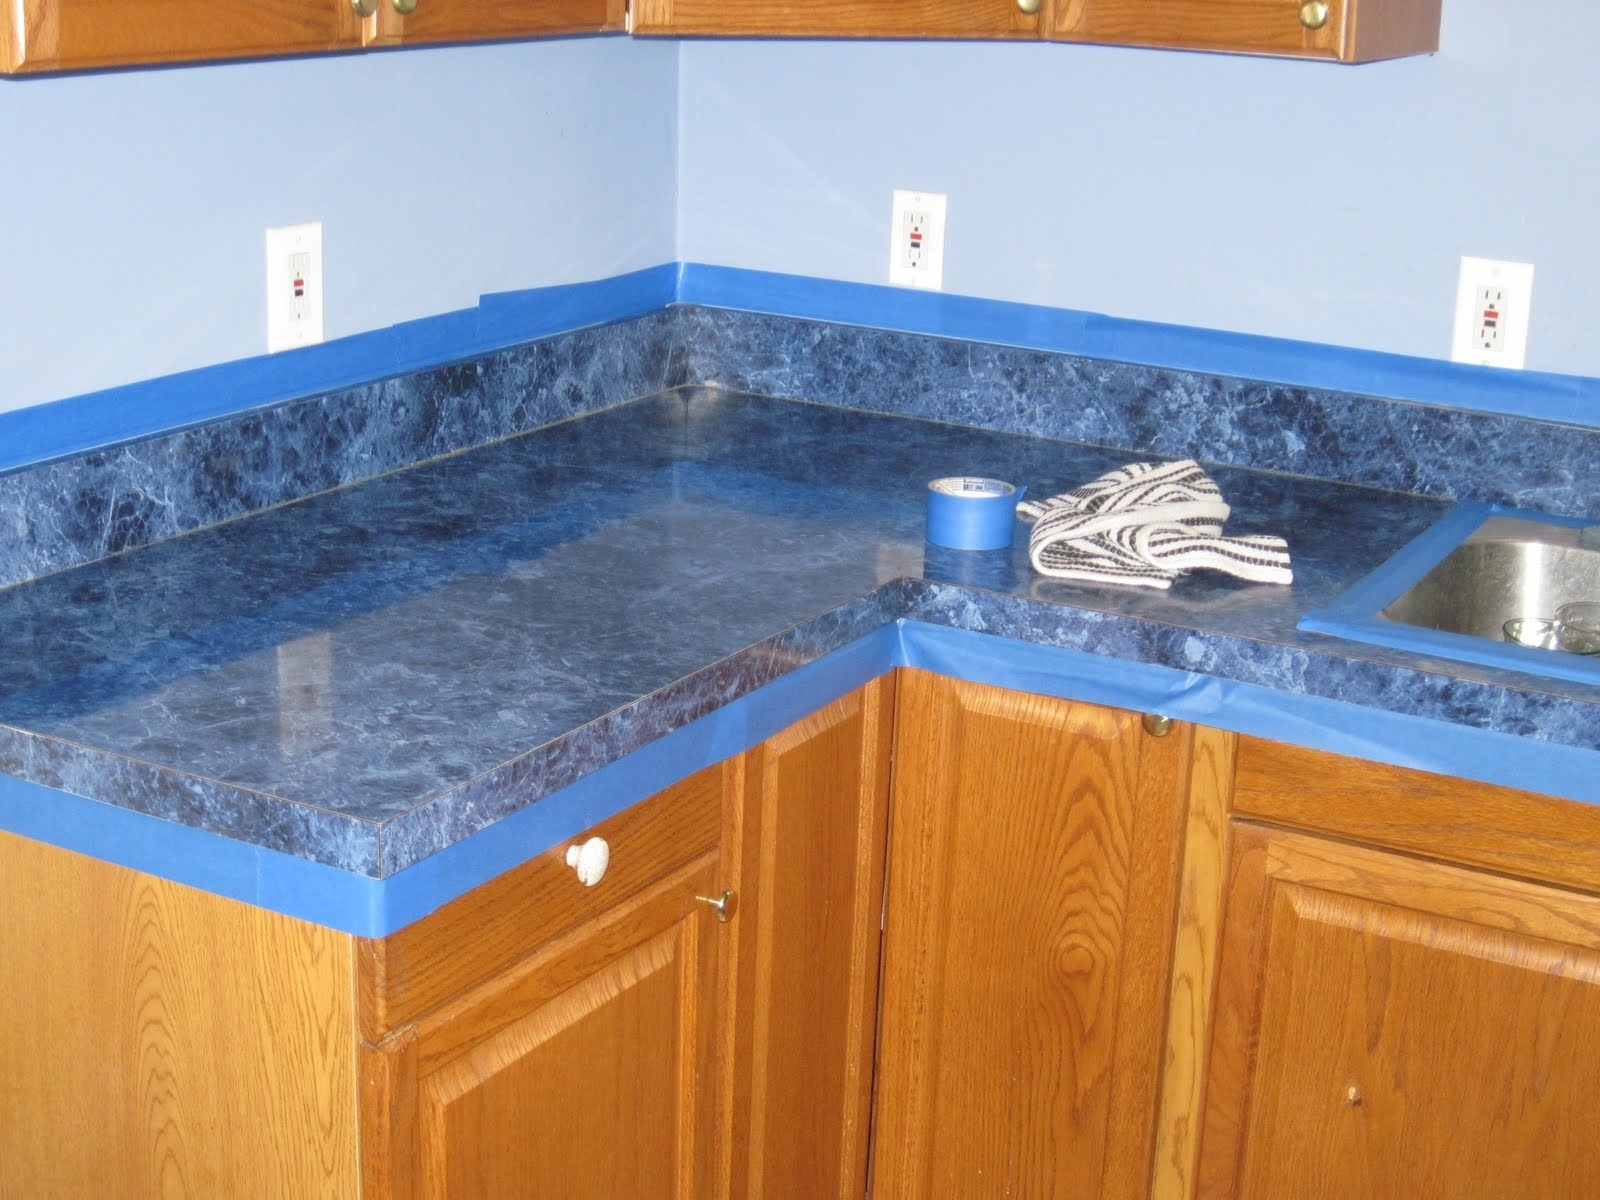 Epoxy Resin Countertops For Kitchen